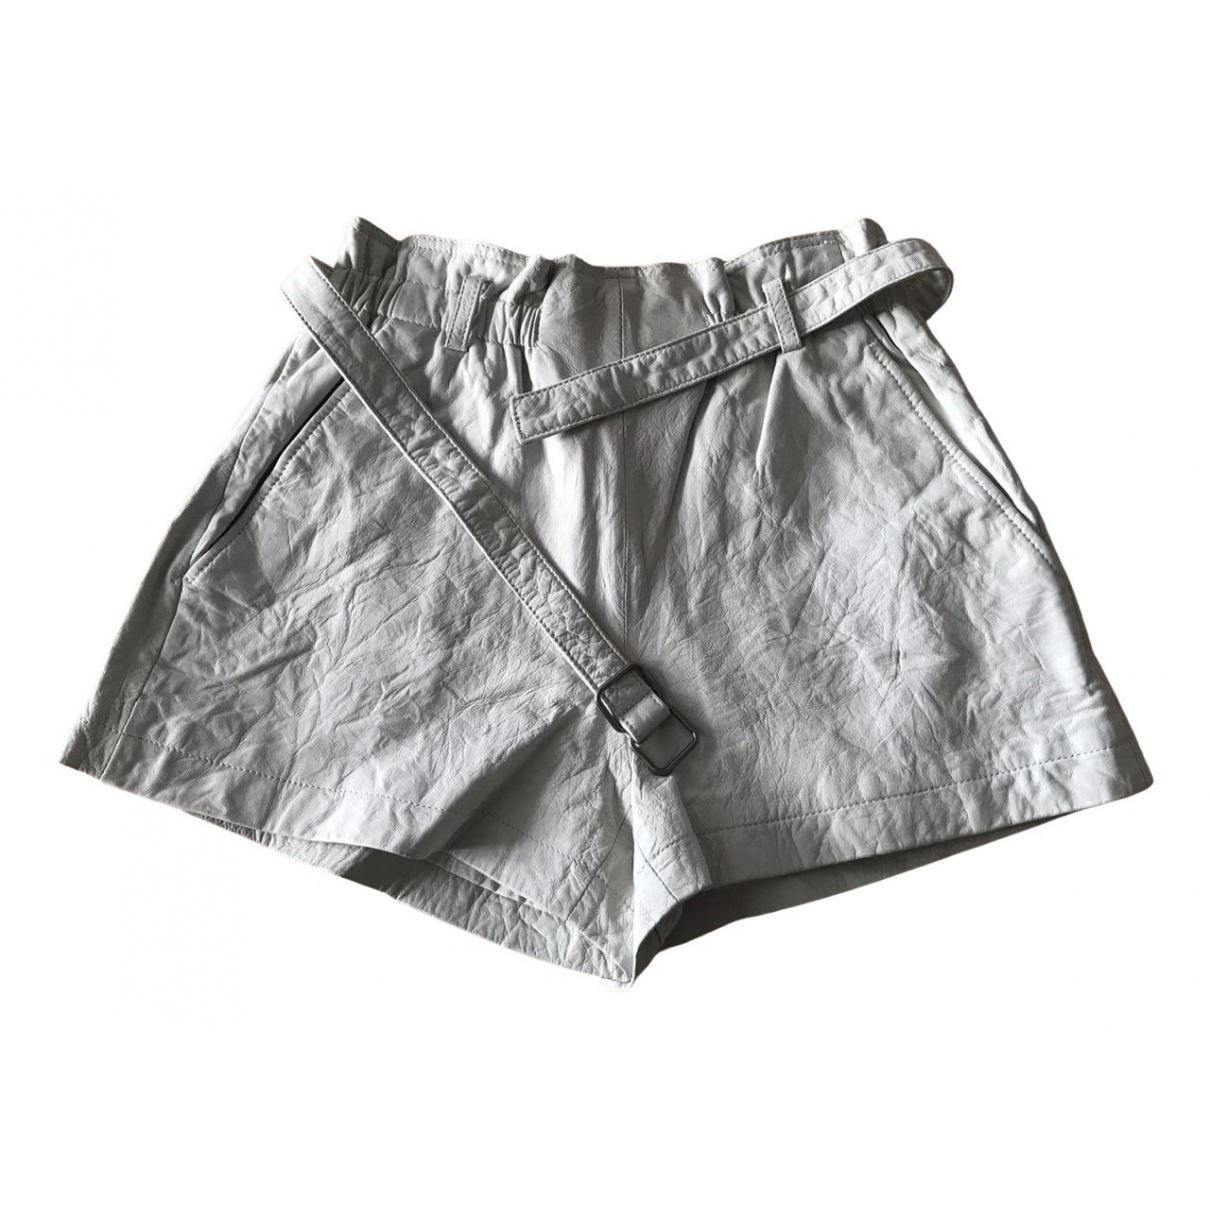 Theory N Grey Leather Shorts for Women 6 US